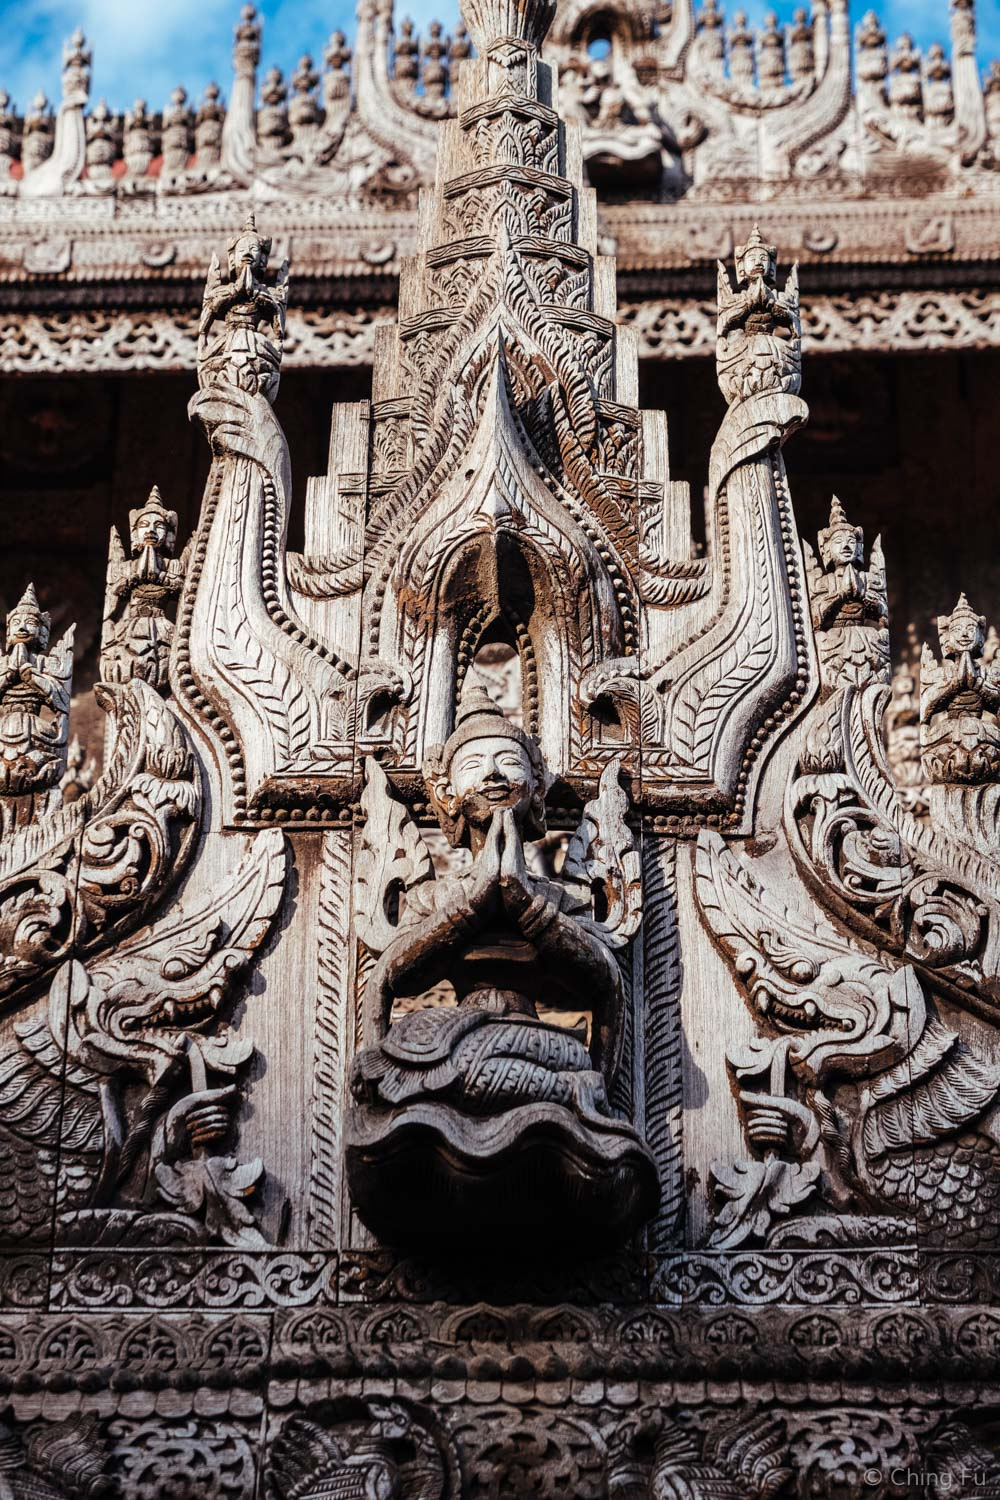 An example of the carvings around Shwenandaw Kyuang Temple